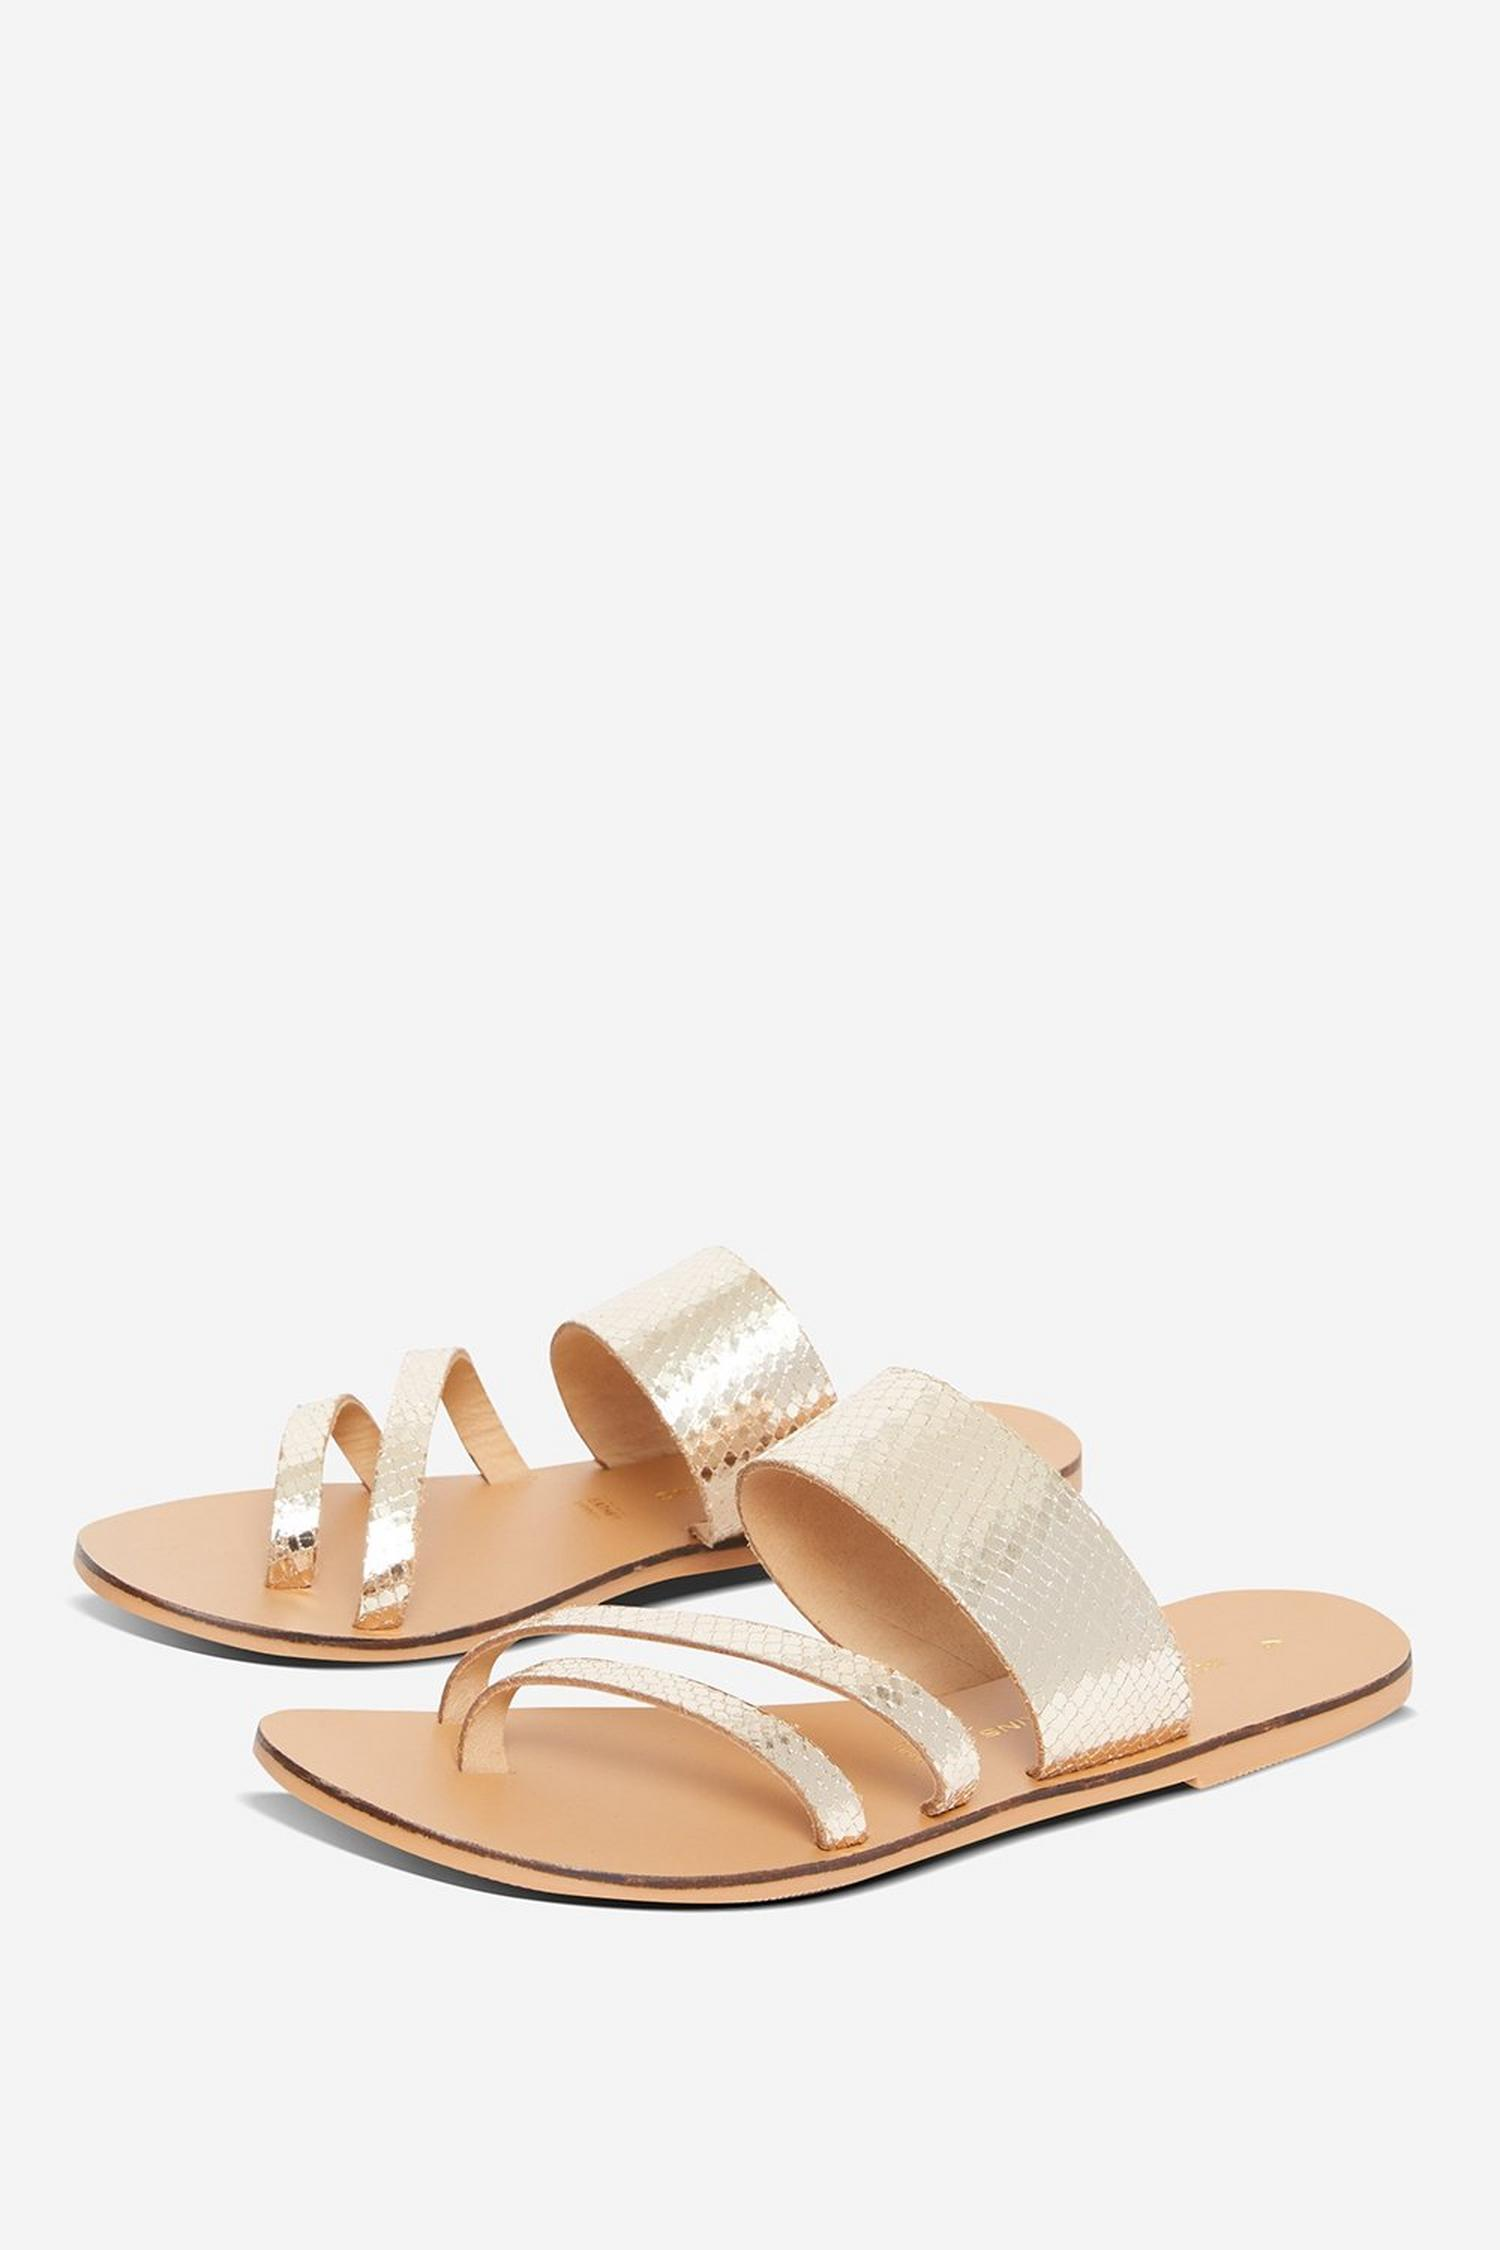 579 Gold Joss Leather Sandals image number 1